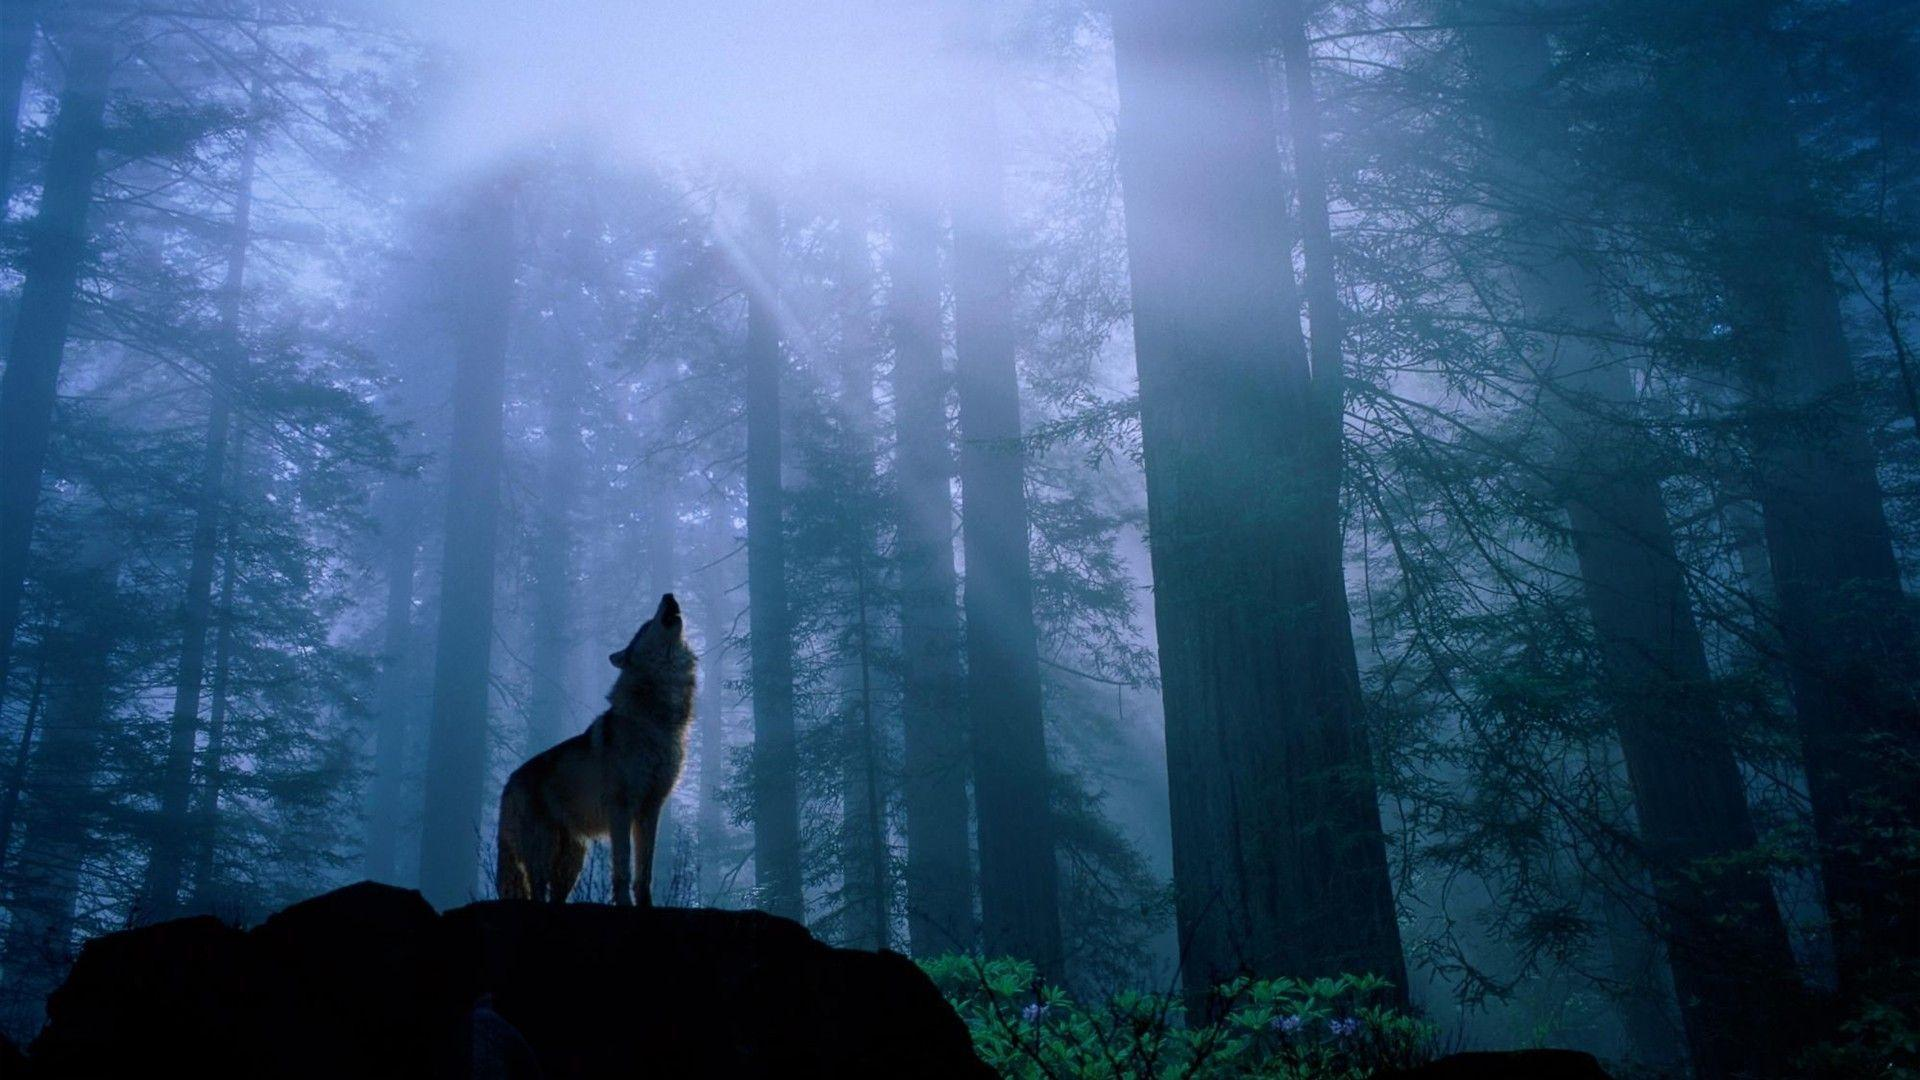 Wolf Wallpaper Album #6 - 1920x1080 Wallpaper Download - Wolf ...